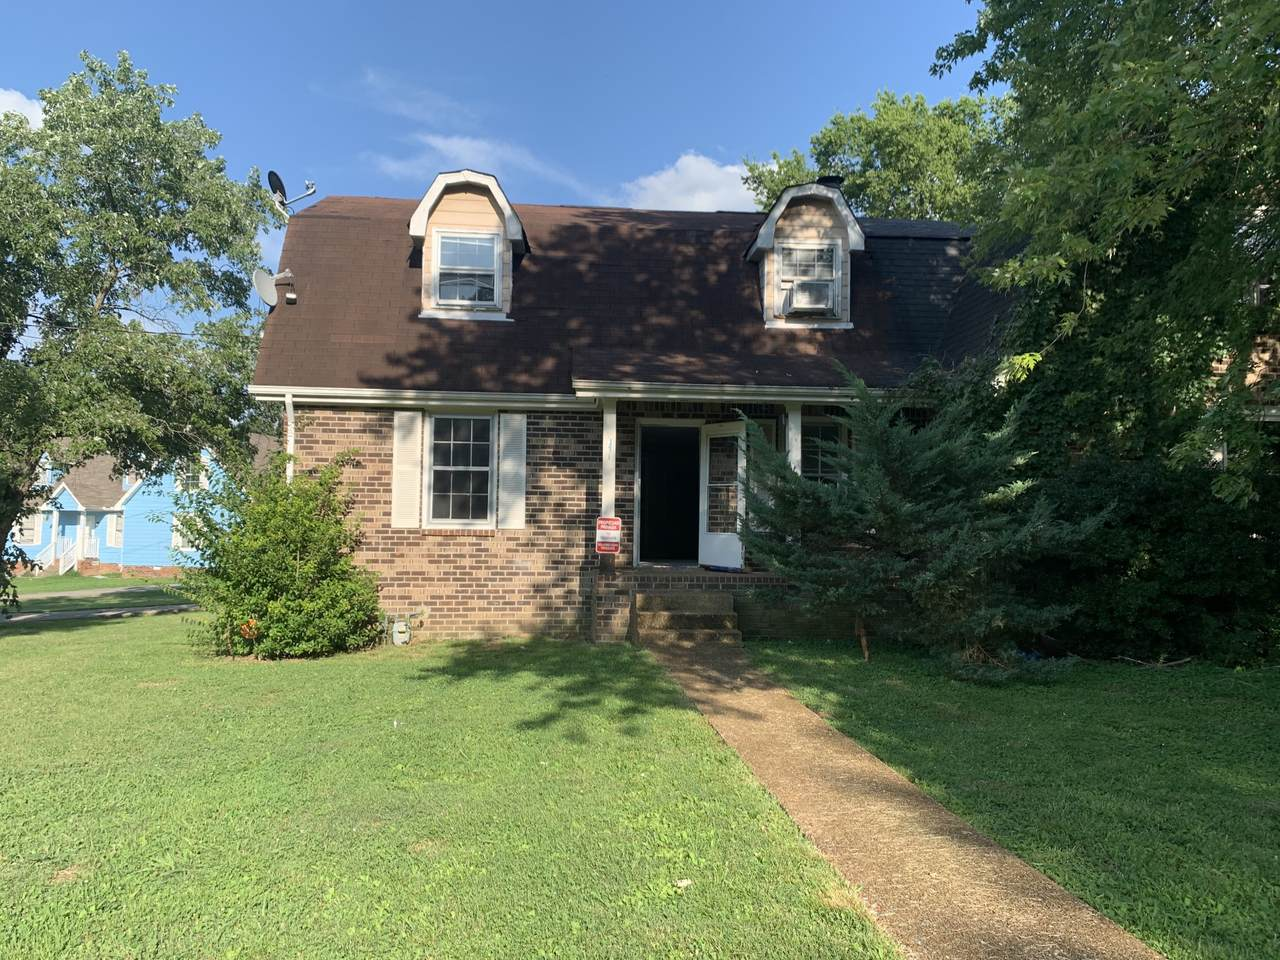 3008 Mossdale Dr - Photo 1